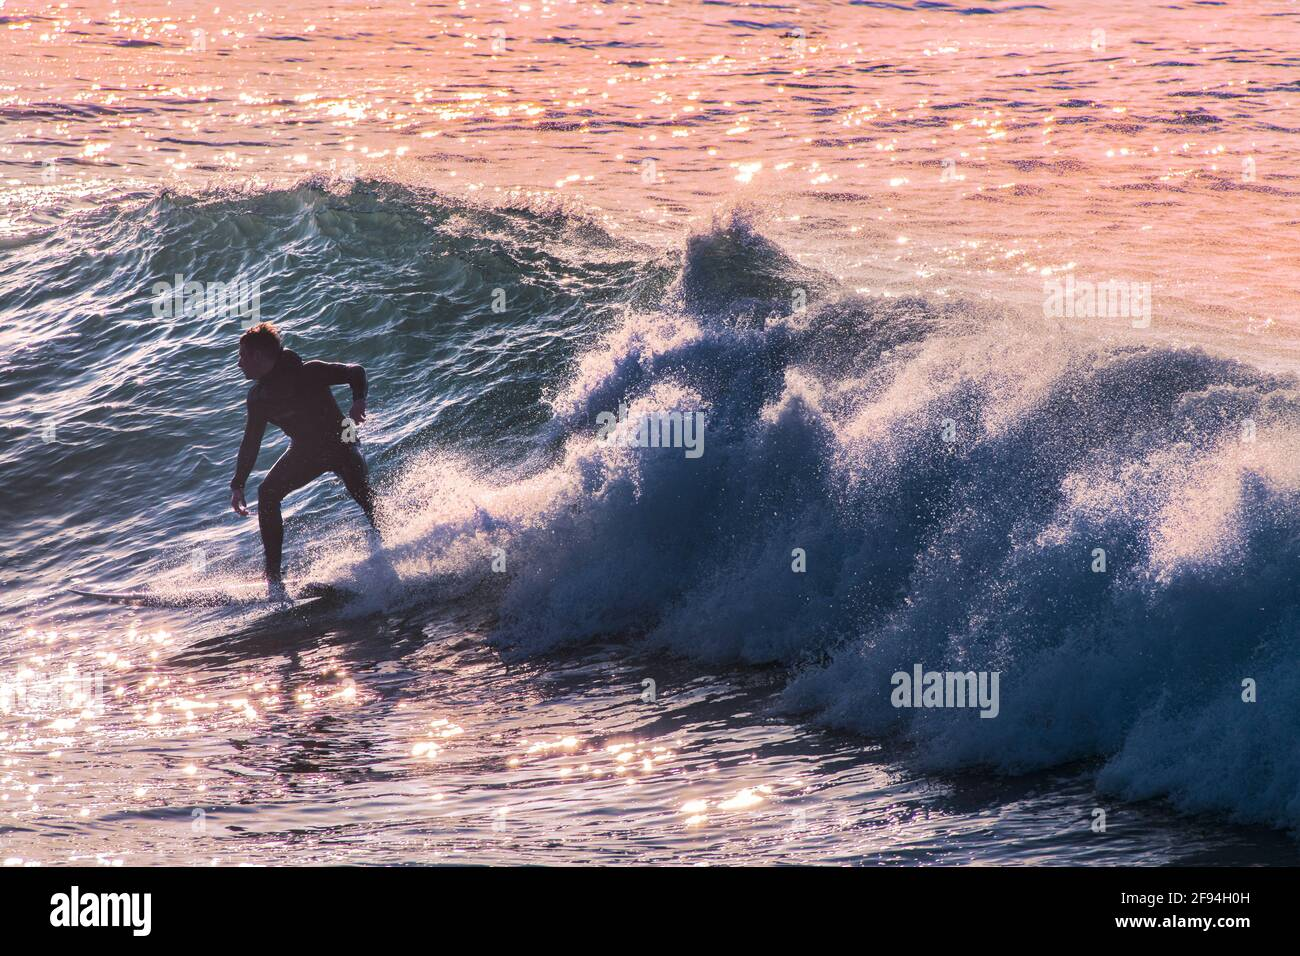 A surfer riding a wave at Fistral in Newquay in Cornwall. Stock Photo